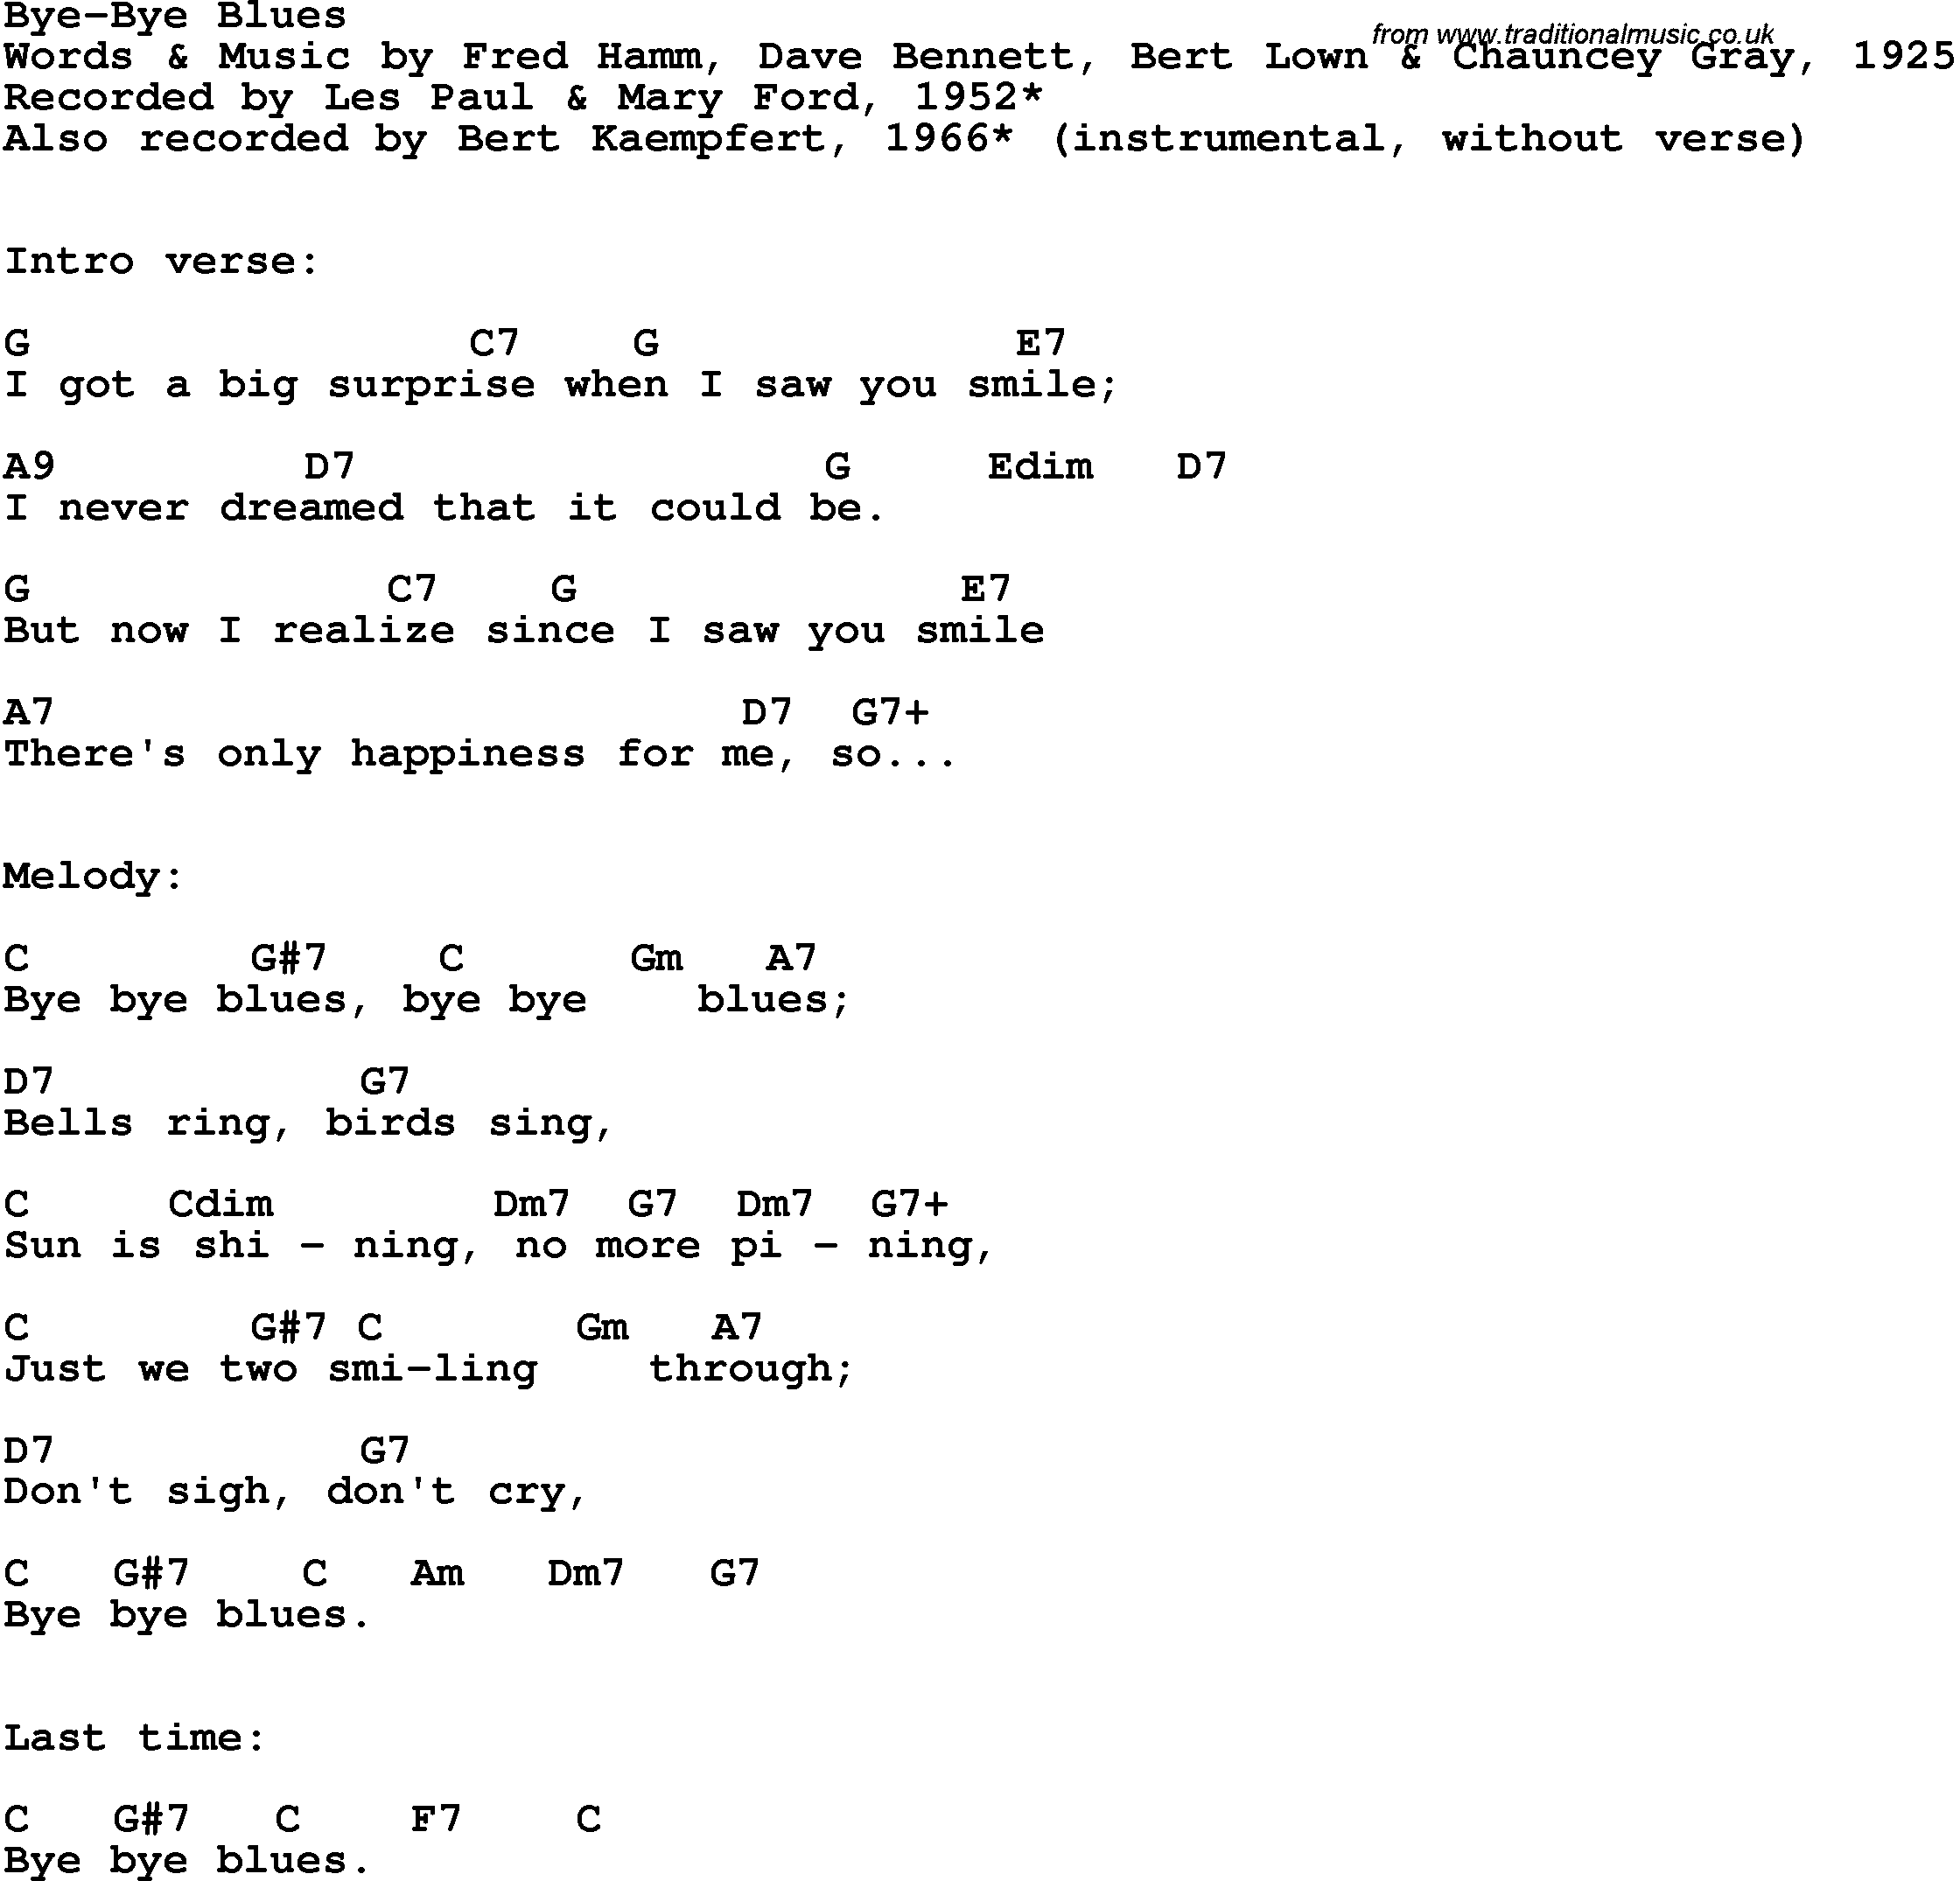 Blackbird lyrics chords free apps and shareware blackbird is a beatles song from the double disc album the beatles known as the blackbird lyrics chords white album guitar chords and lyrics made easy hexwebz Images